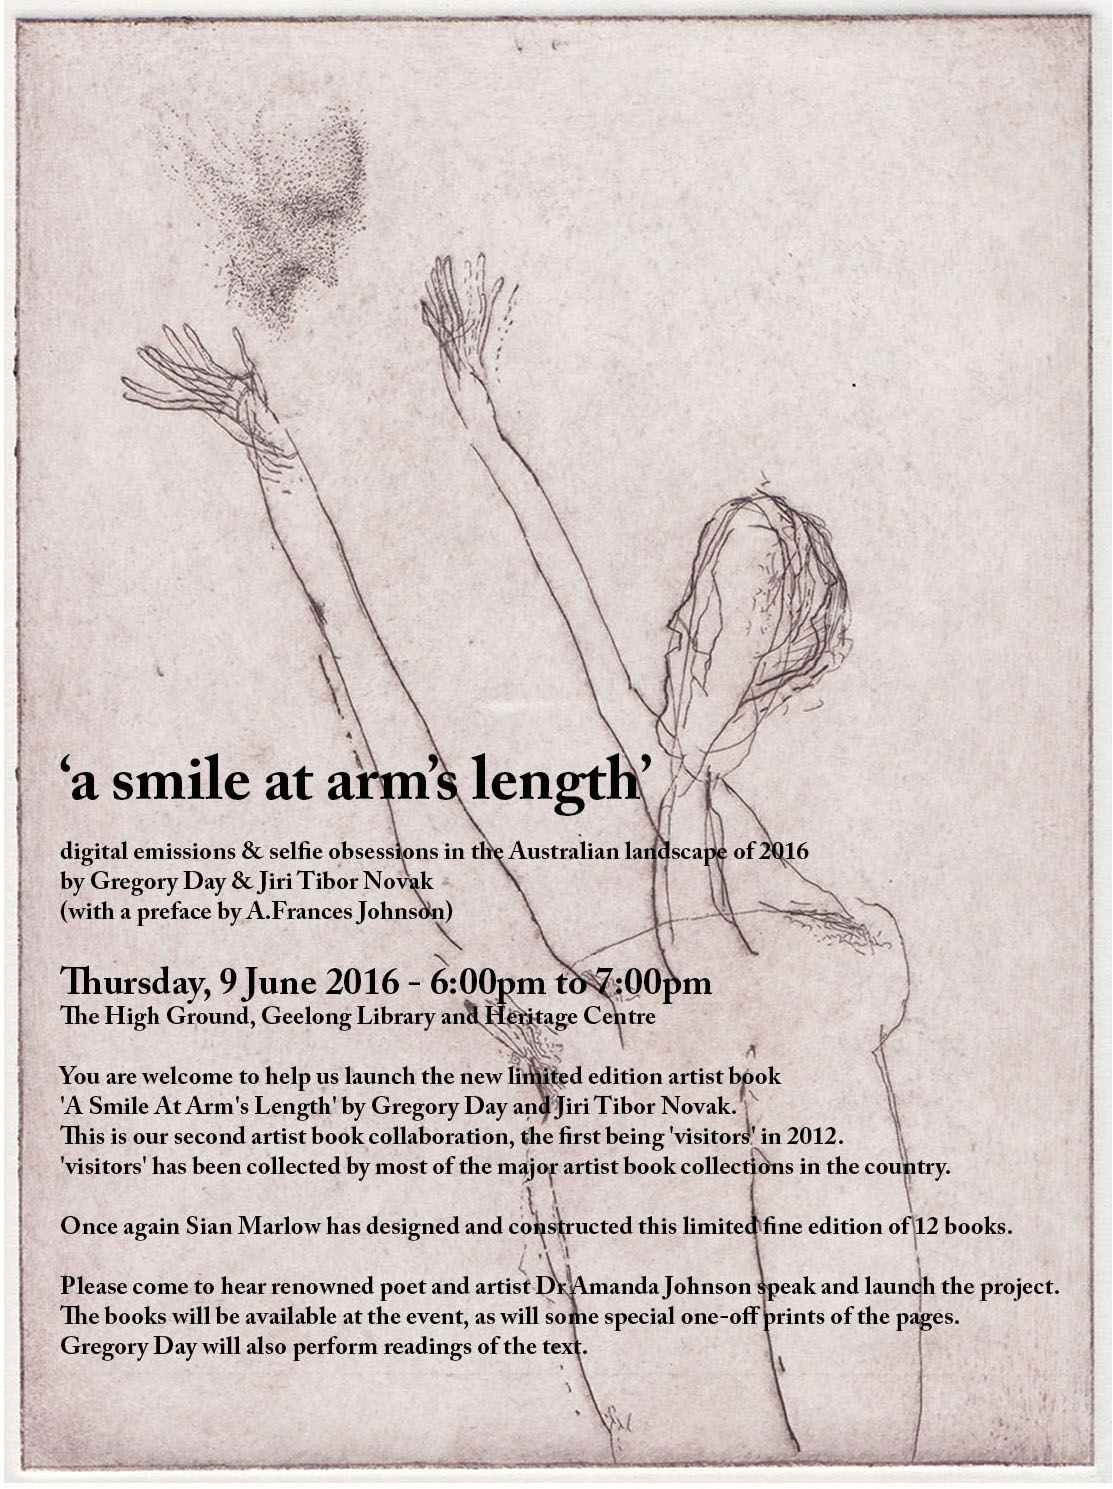 a smile at arm's length